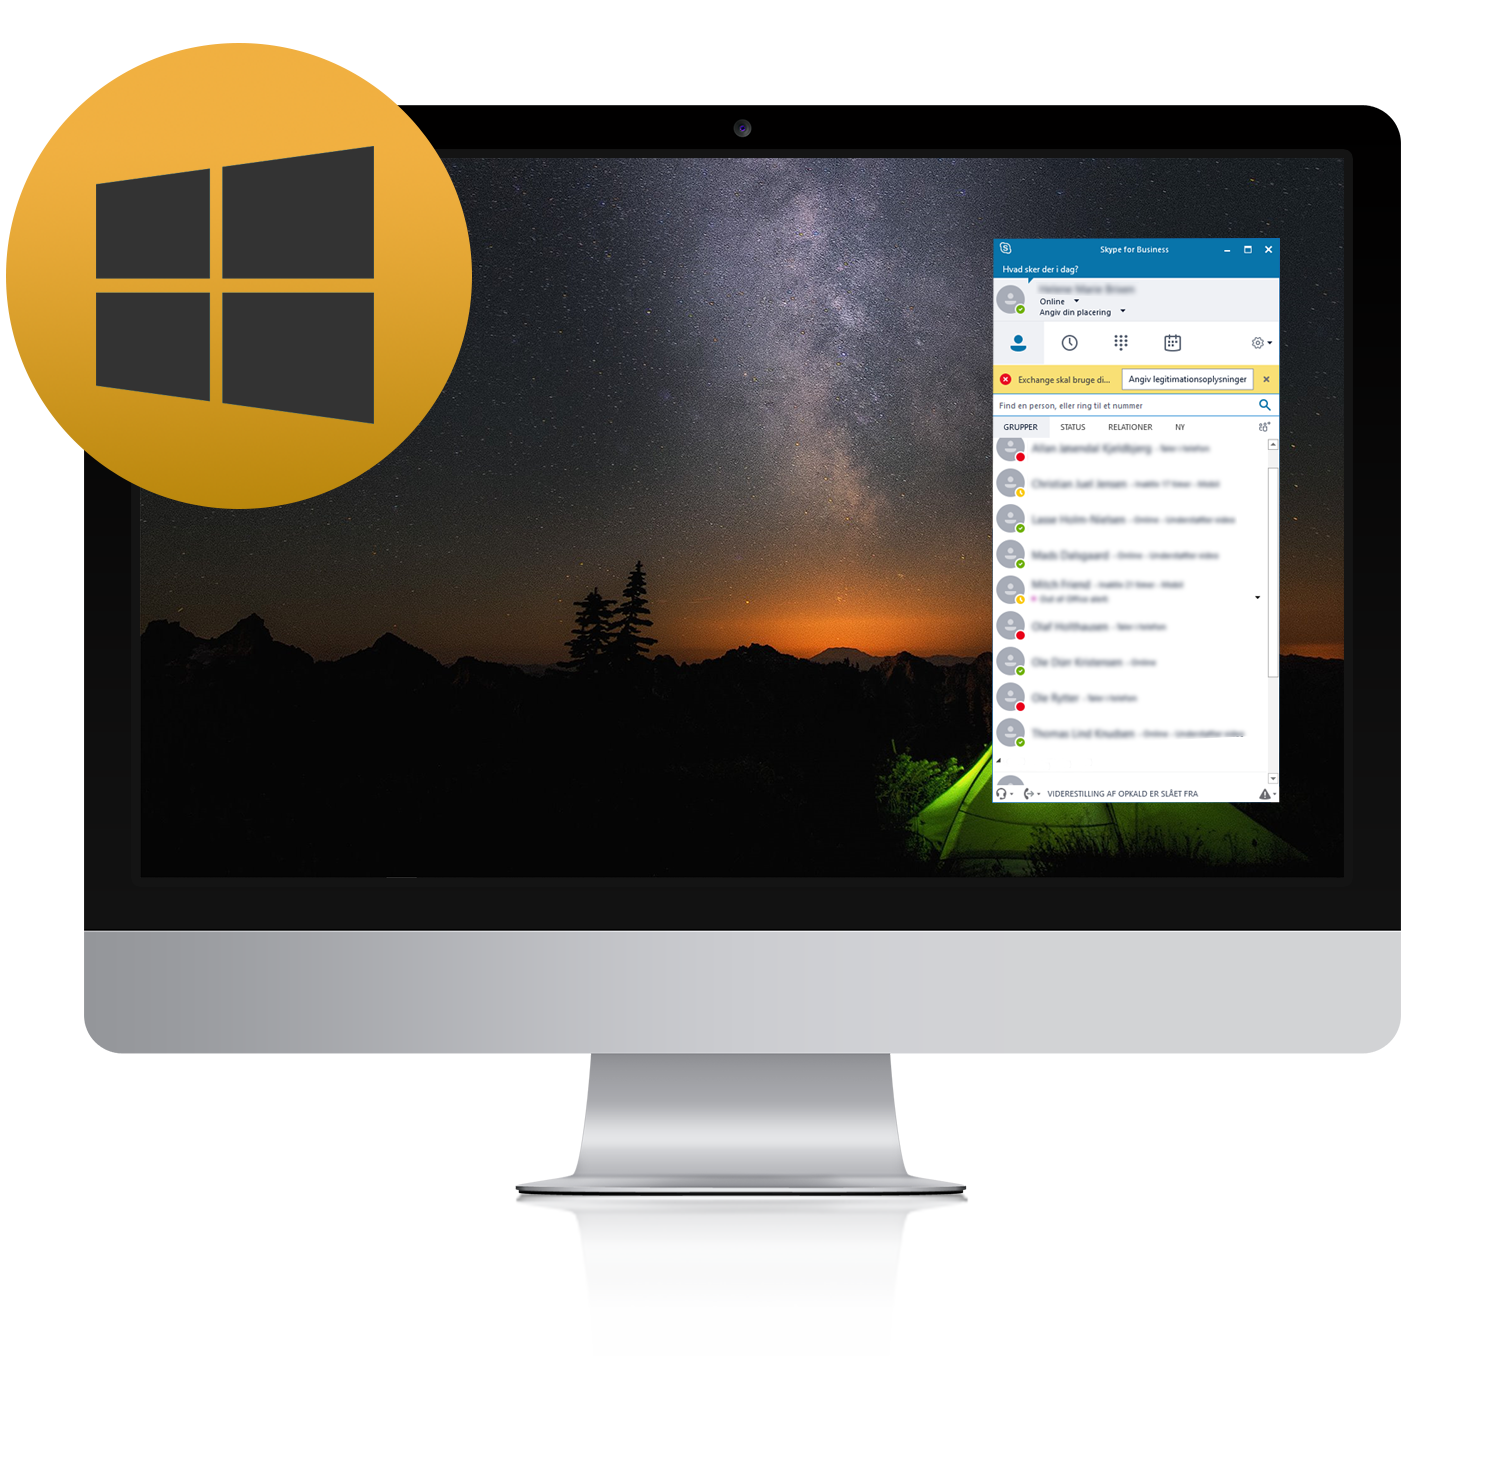 kuando Busylight compatible Skype for Business Windows